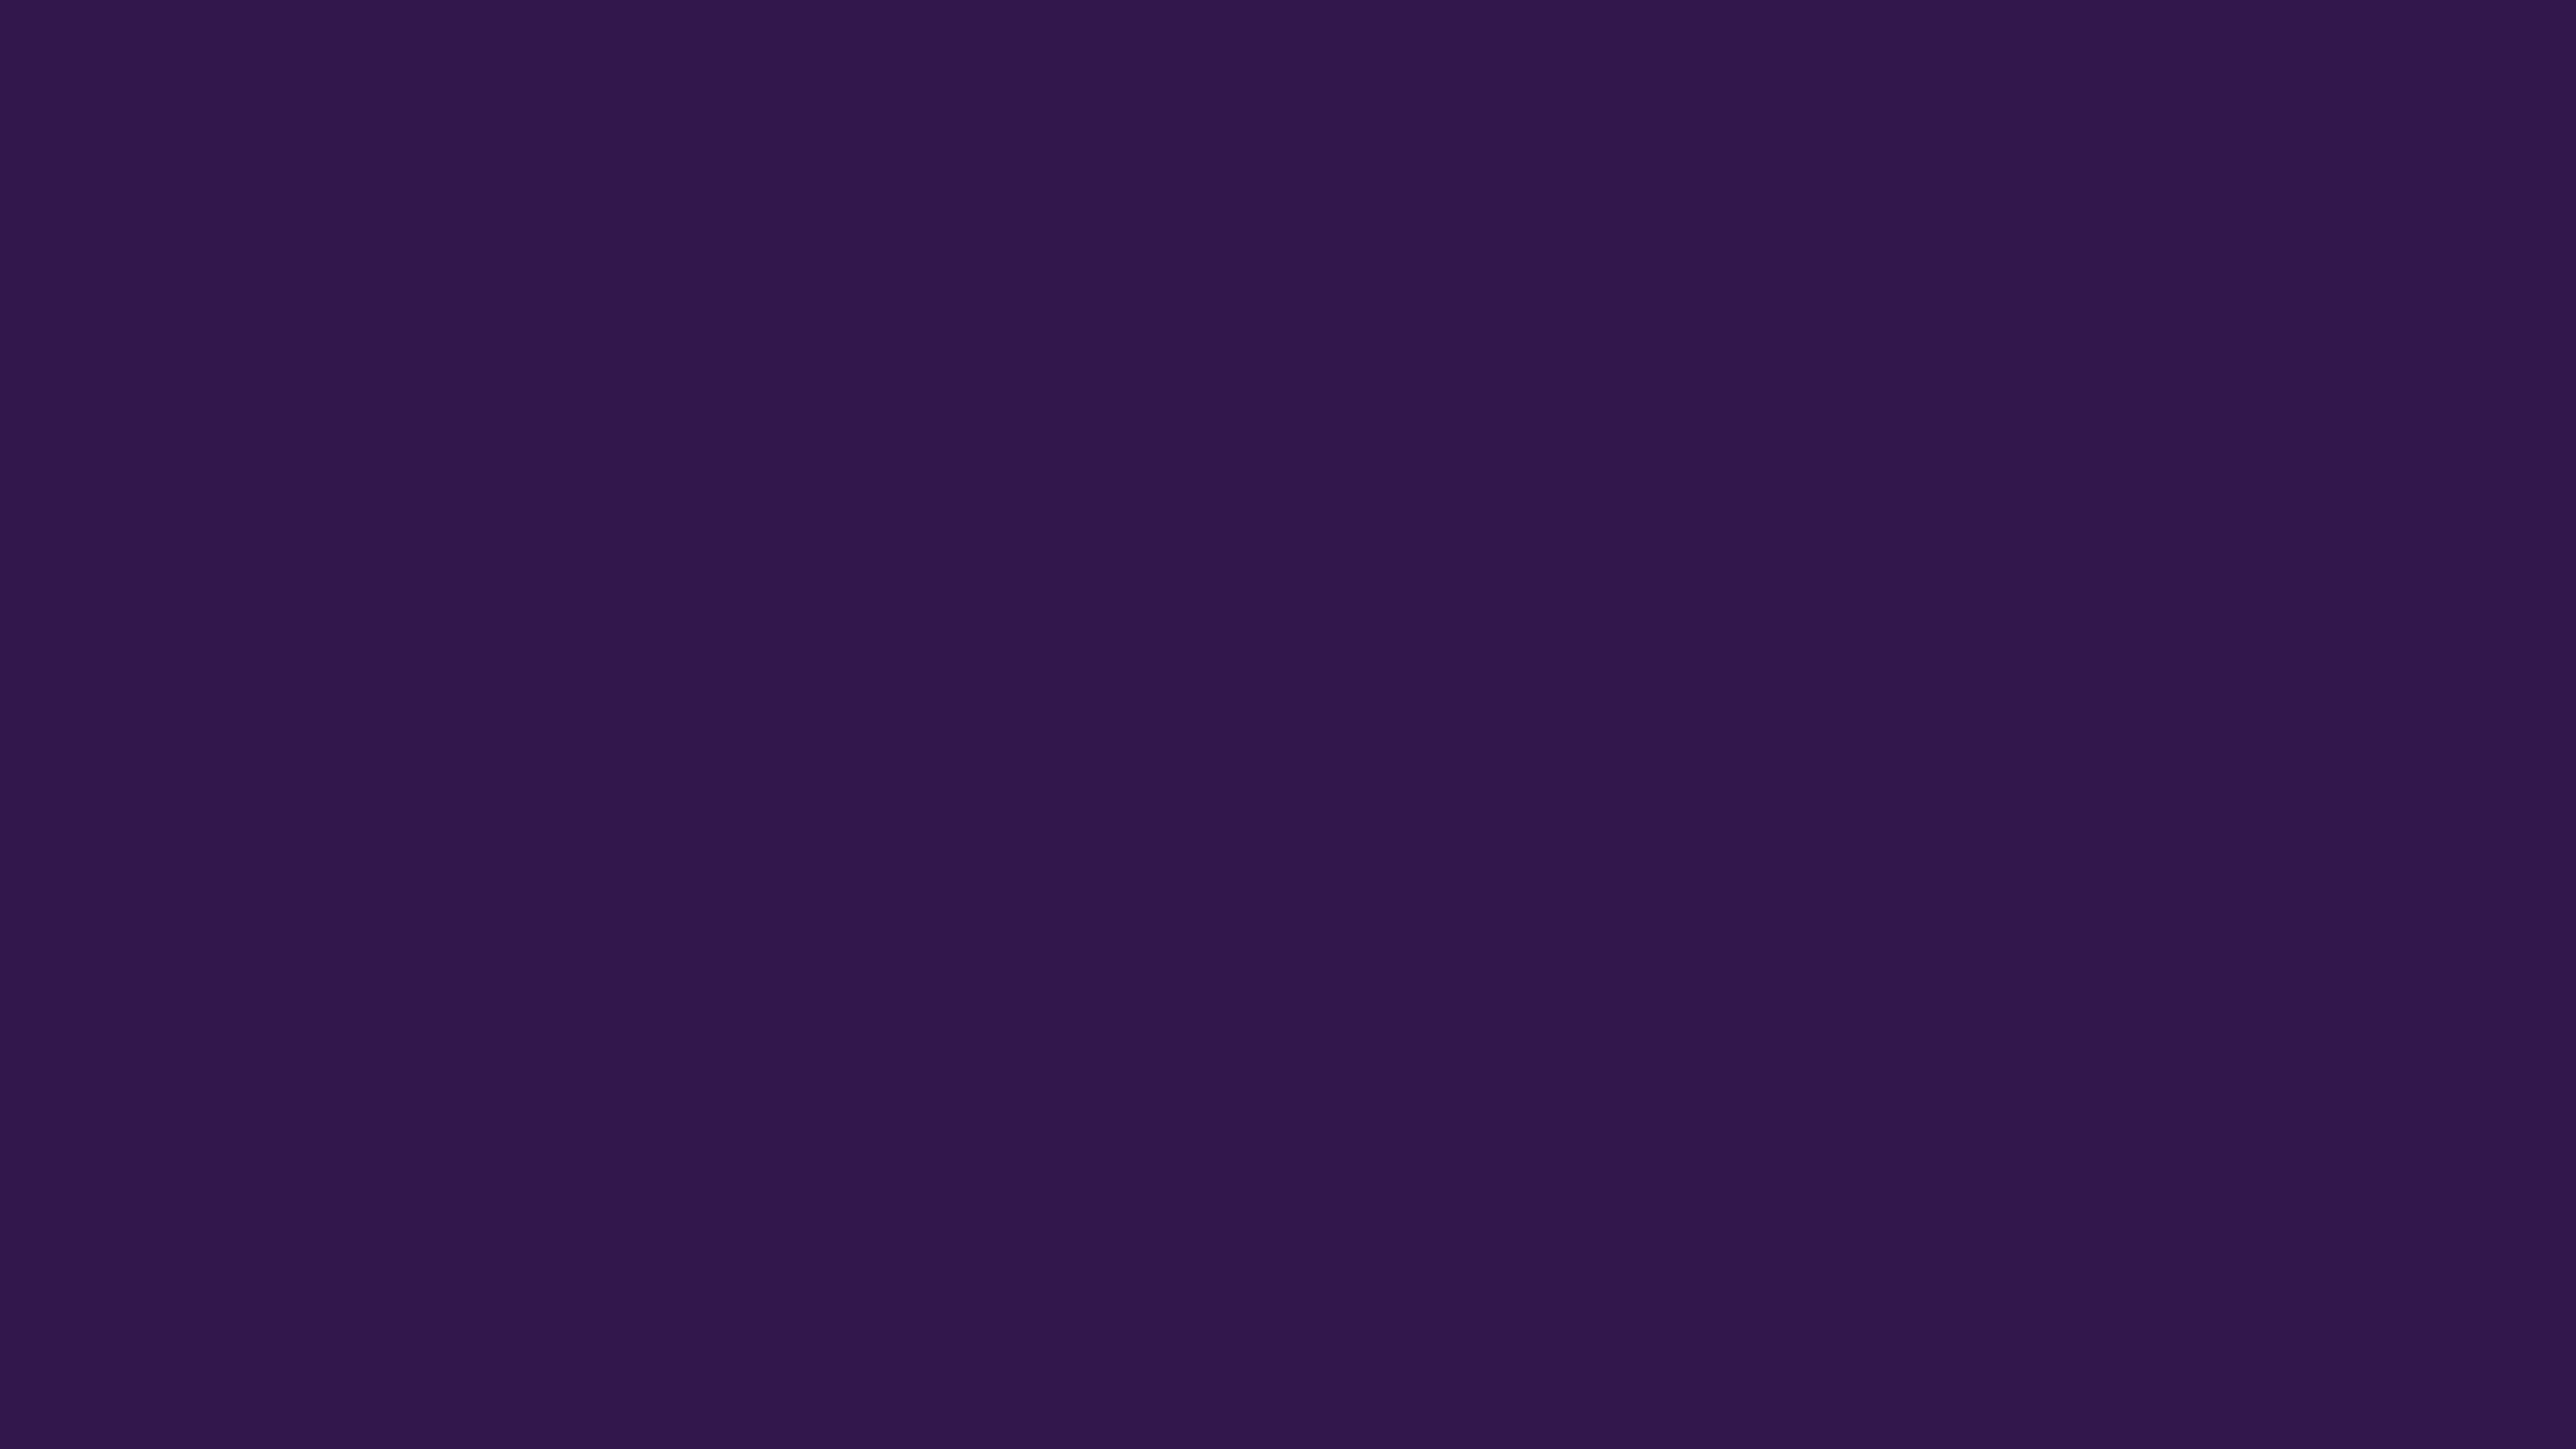 3840x2160 Russian Violet Solid Color Background